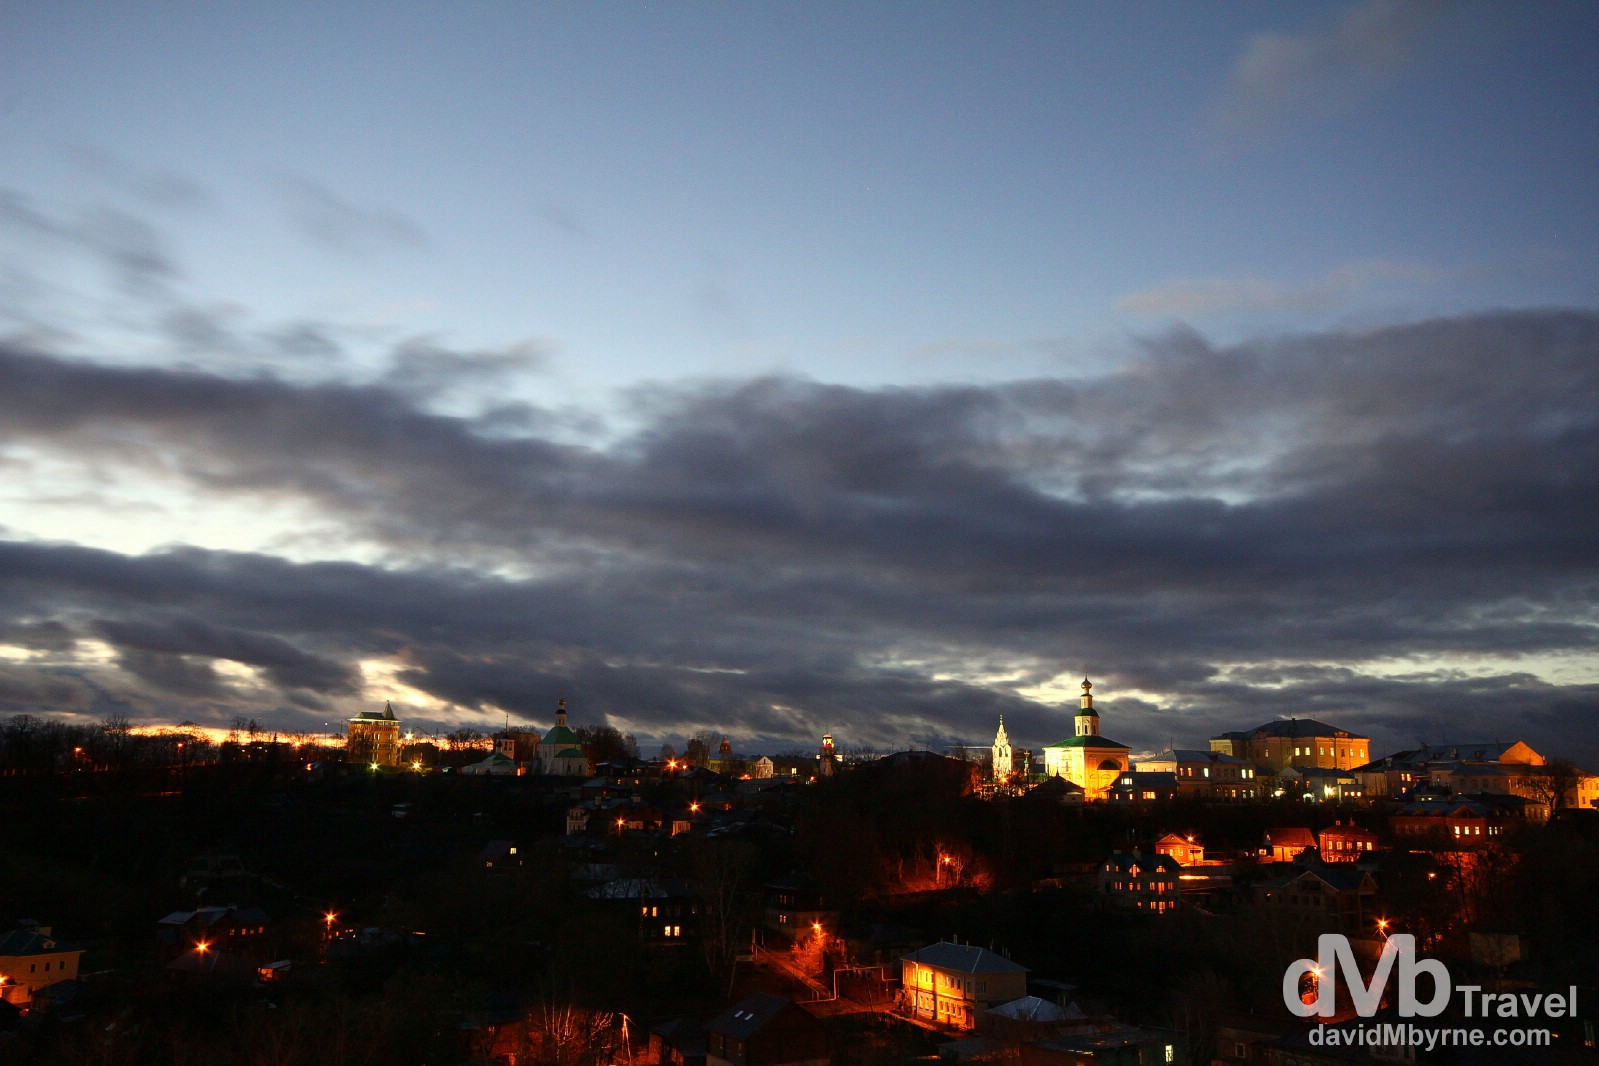 Churches dot the hills of Vladimir in a picture taken shortly after sunset. Vladimir, Russia. November 16th 2012.